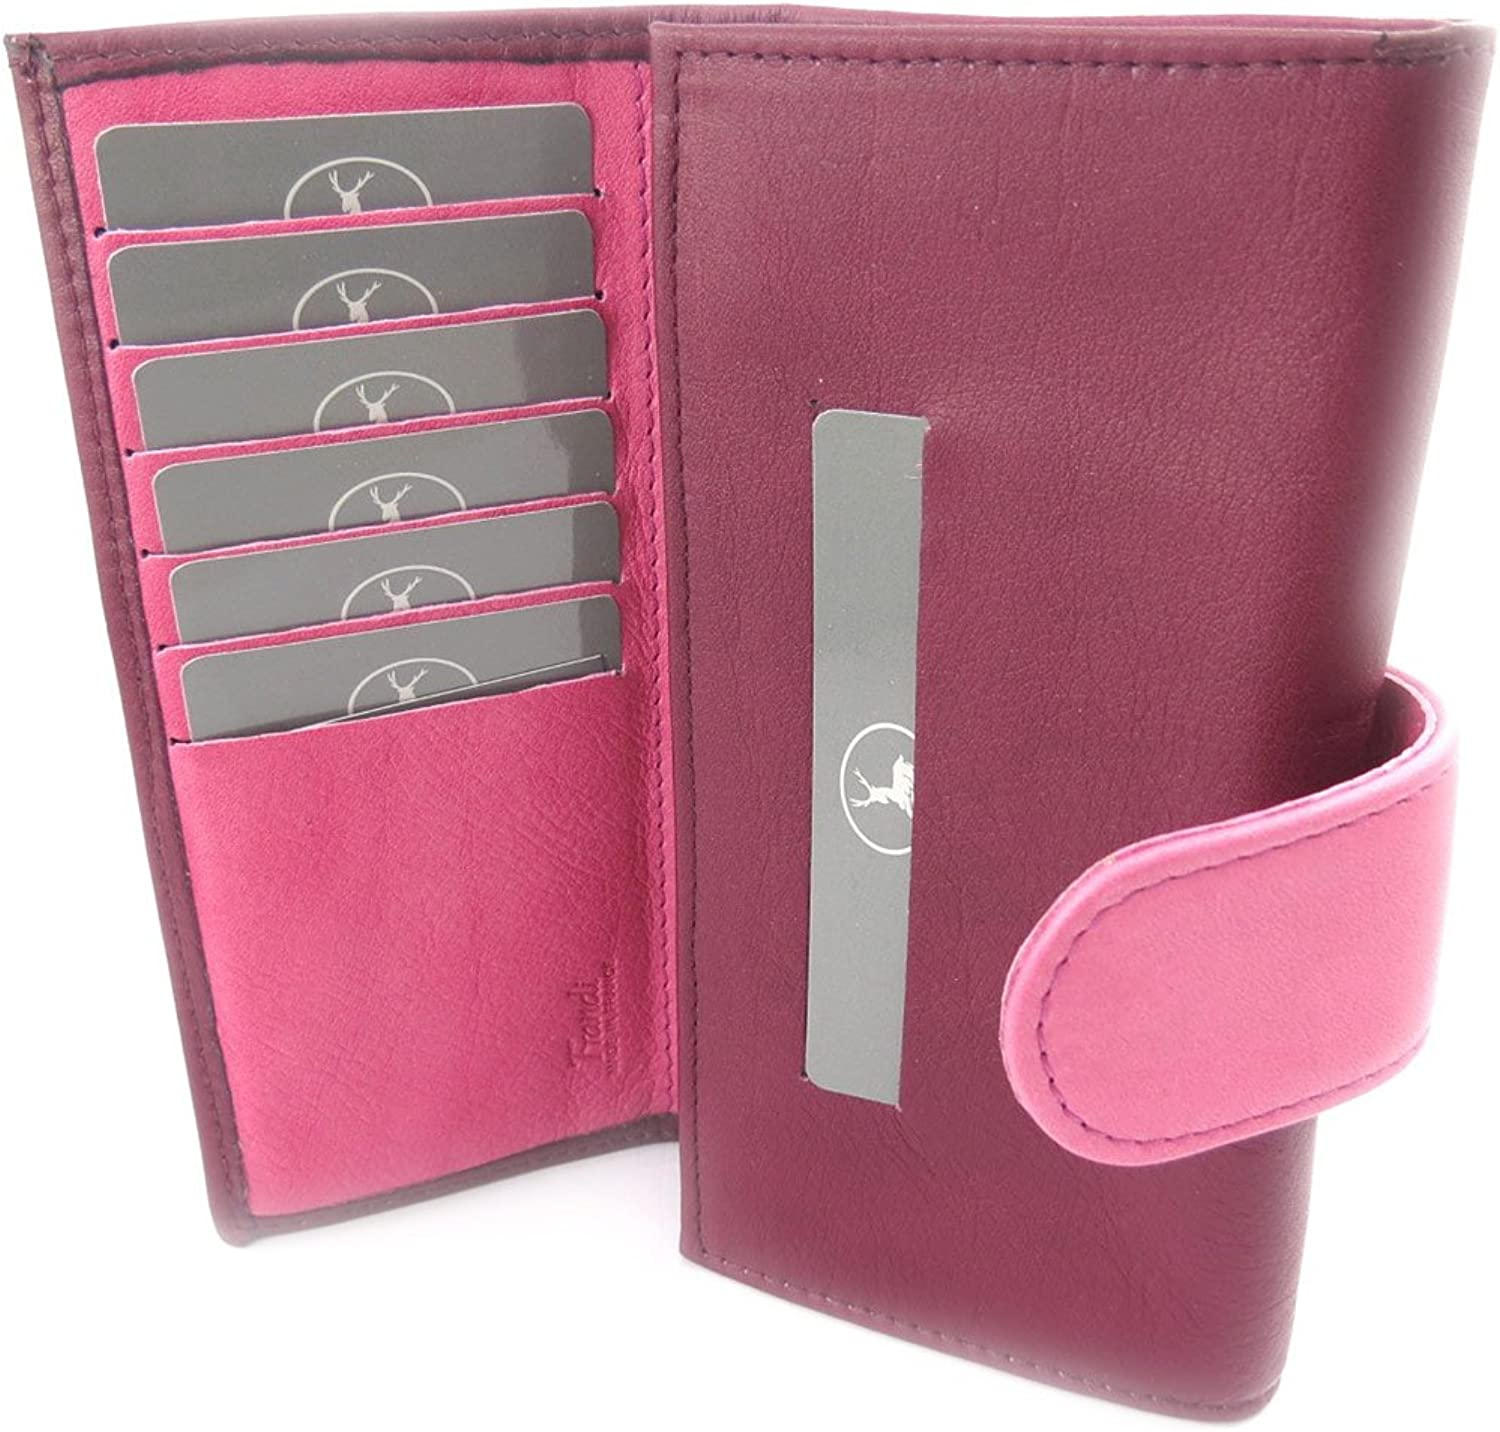 Large leather wallet 'Frandi' pink purple.